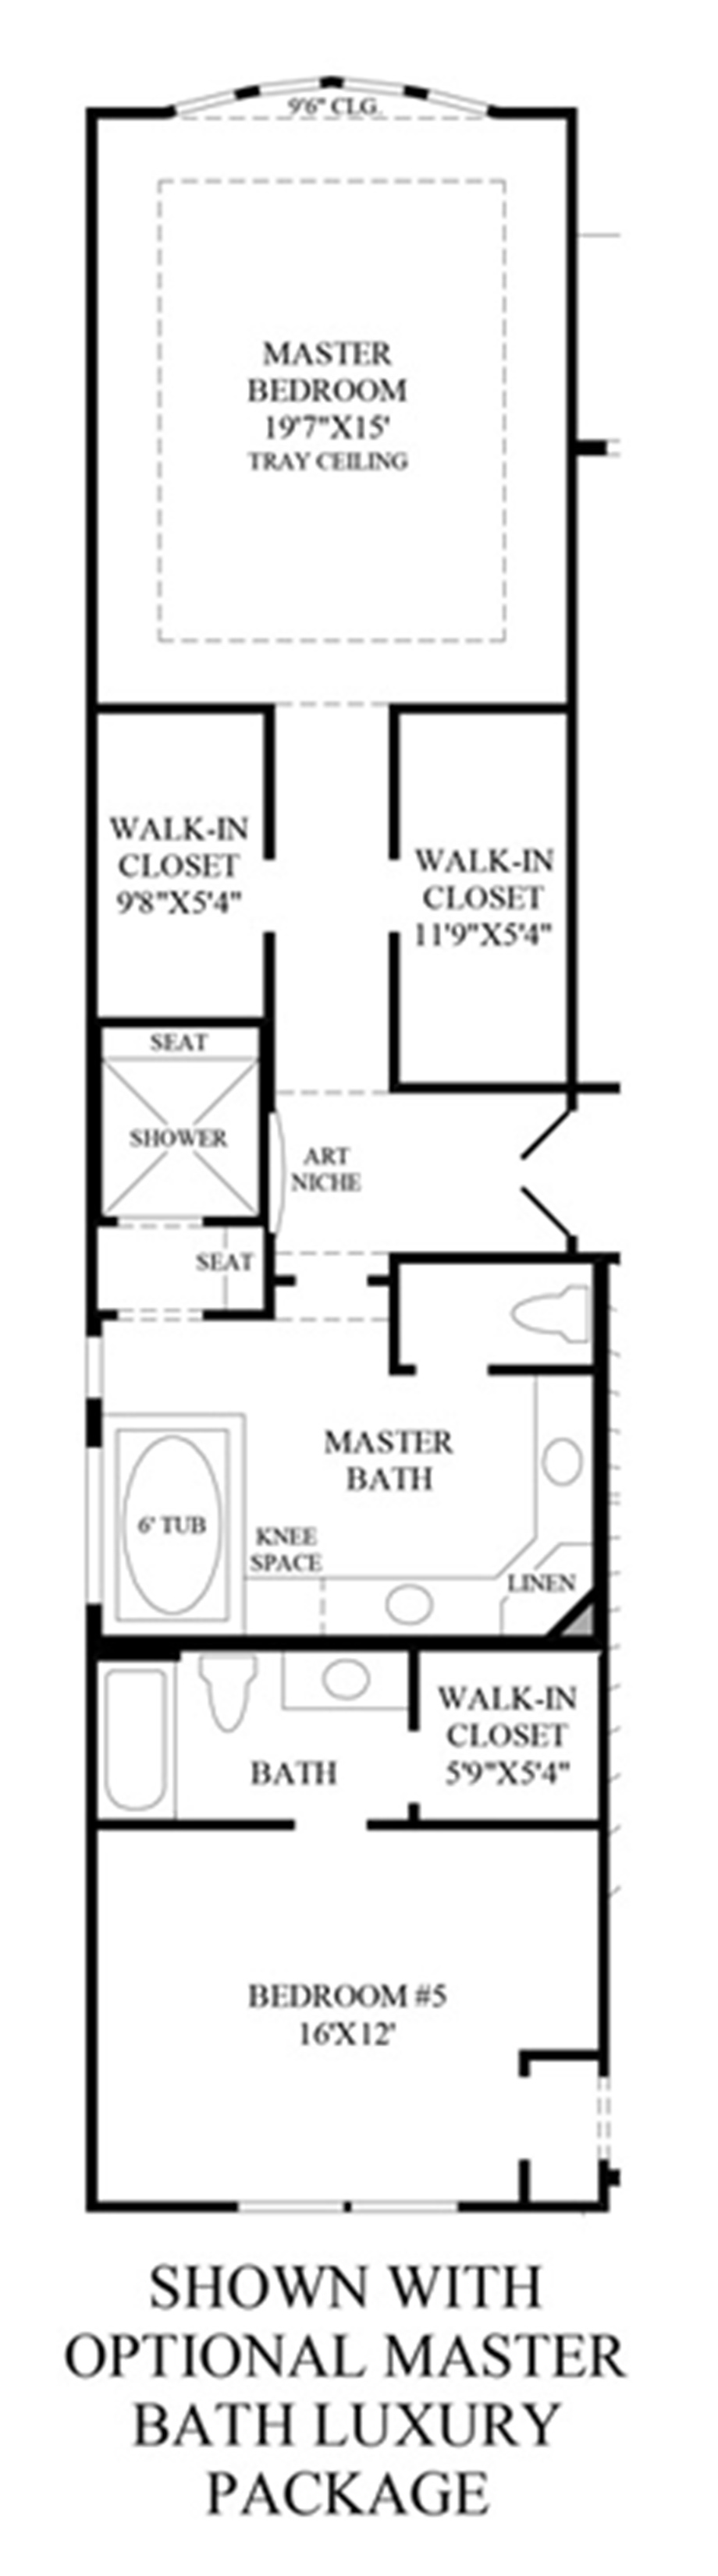 Optional Master Bath Luxury Package Floor Plan